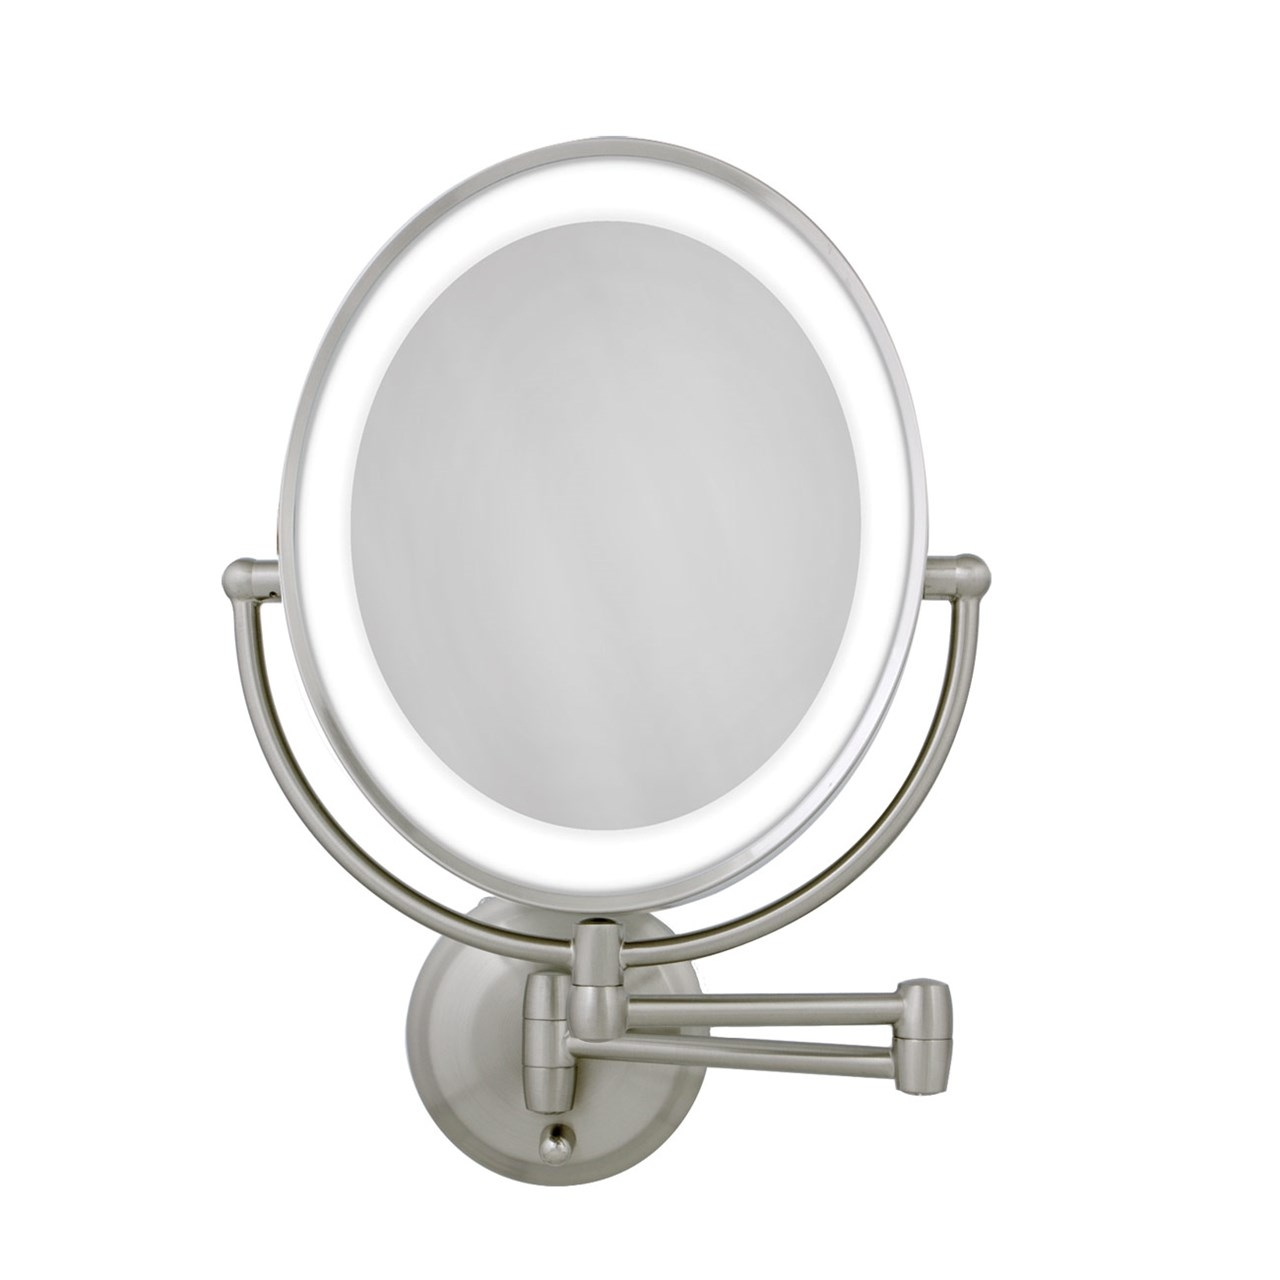 Zadro Oval Wall Mount Mirror Zadro Oval Wall Mount Mirror maxiaids led lighted wall mount oval make up mirror 10x 1x 1280 X 1280